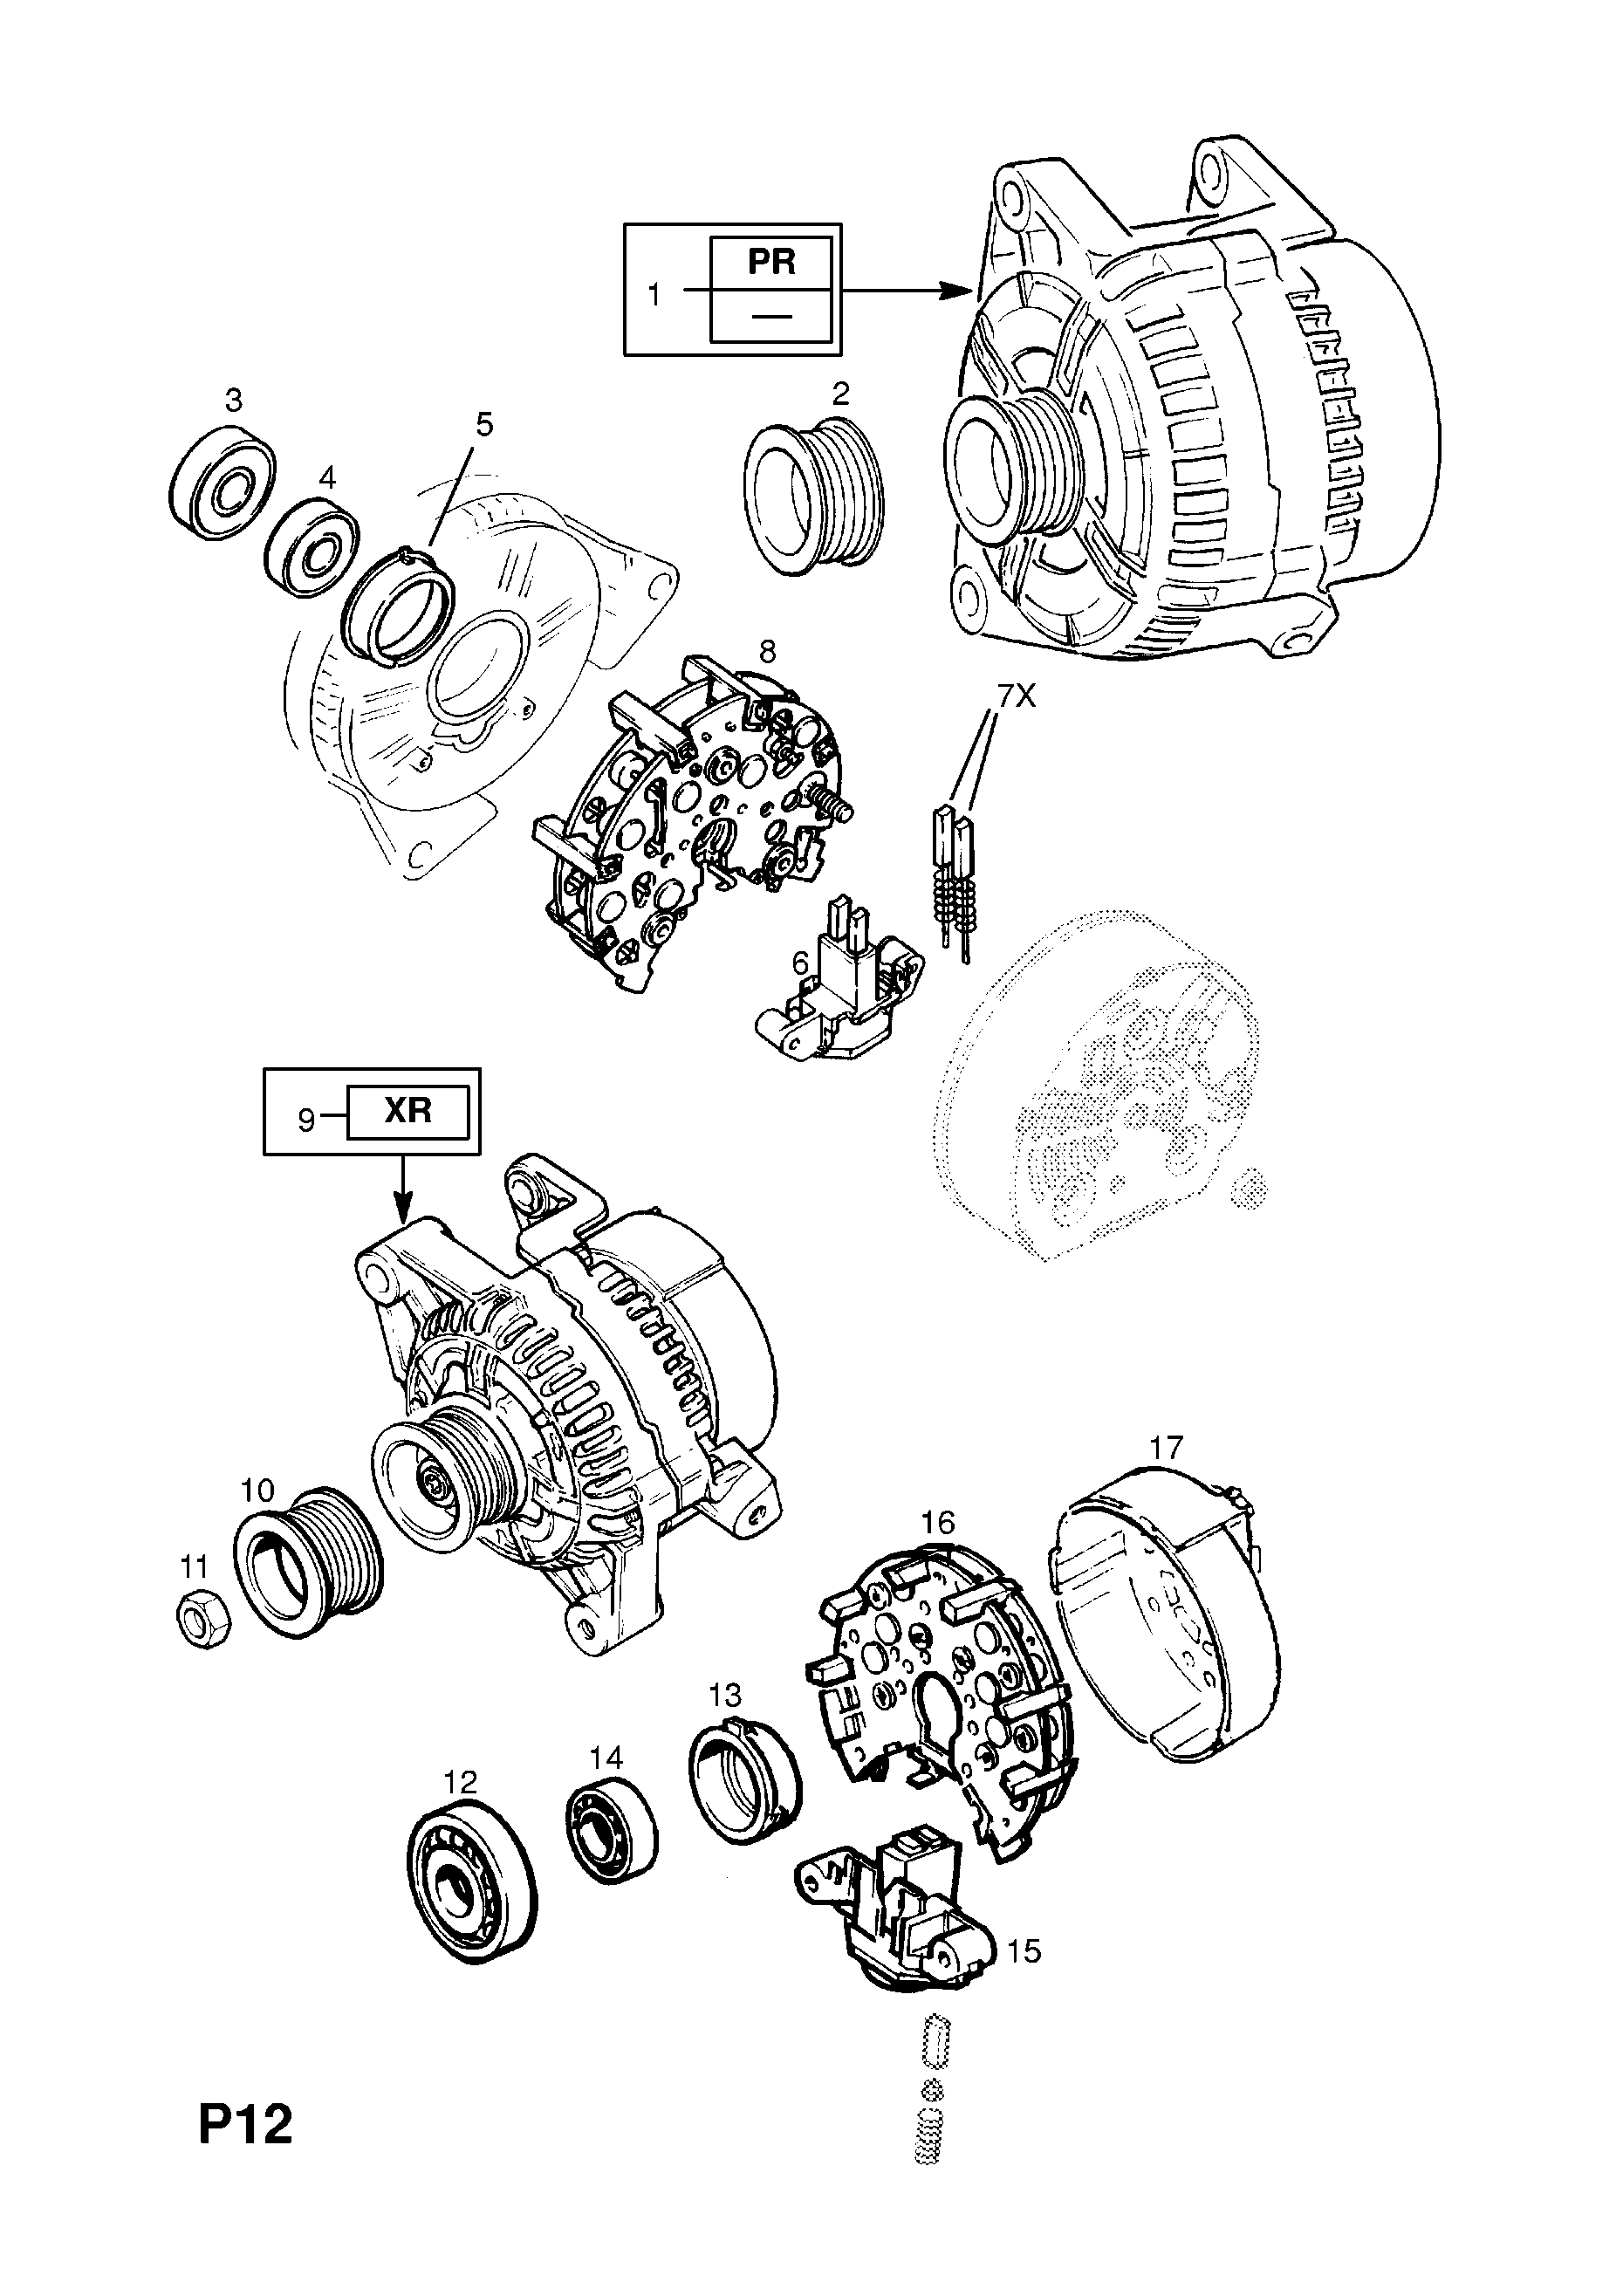 bosch starter motor wiring diagram wiring diagram database Opel Vectra 2.0 opel vectra b 1996 2002 p electrical 1 engine and cooling 31 bosch o2 sensor wiring diagram bosch starter motor wiring diagram